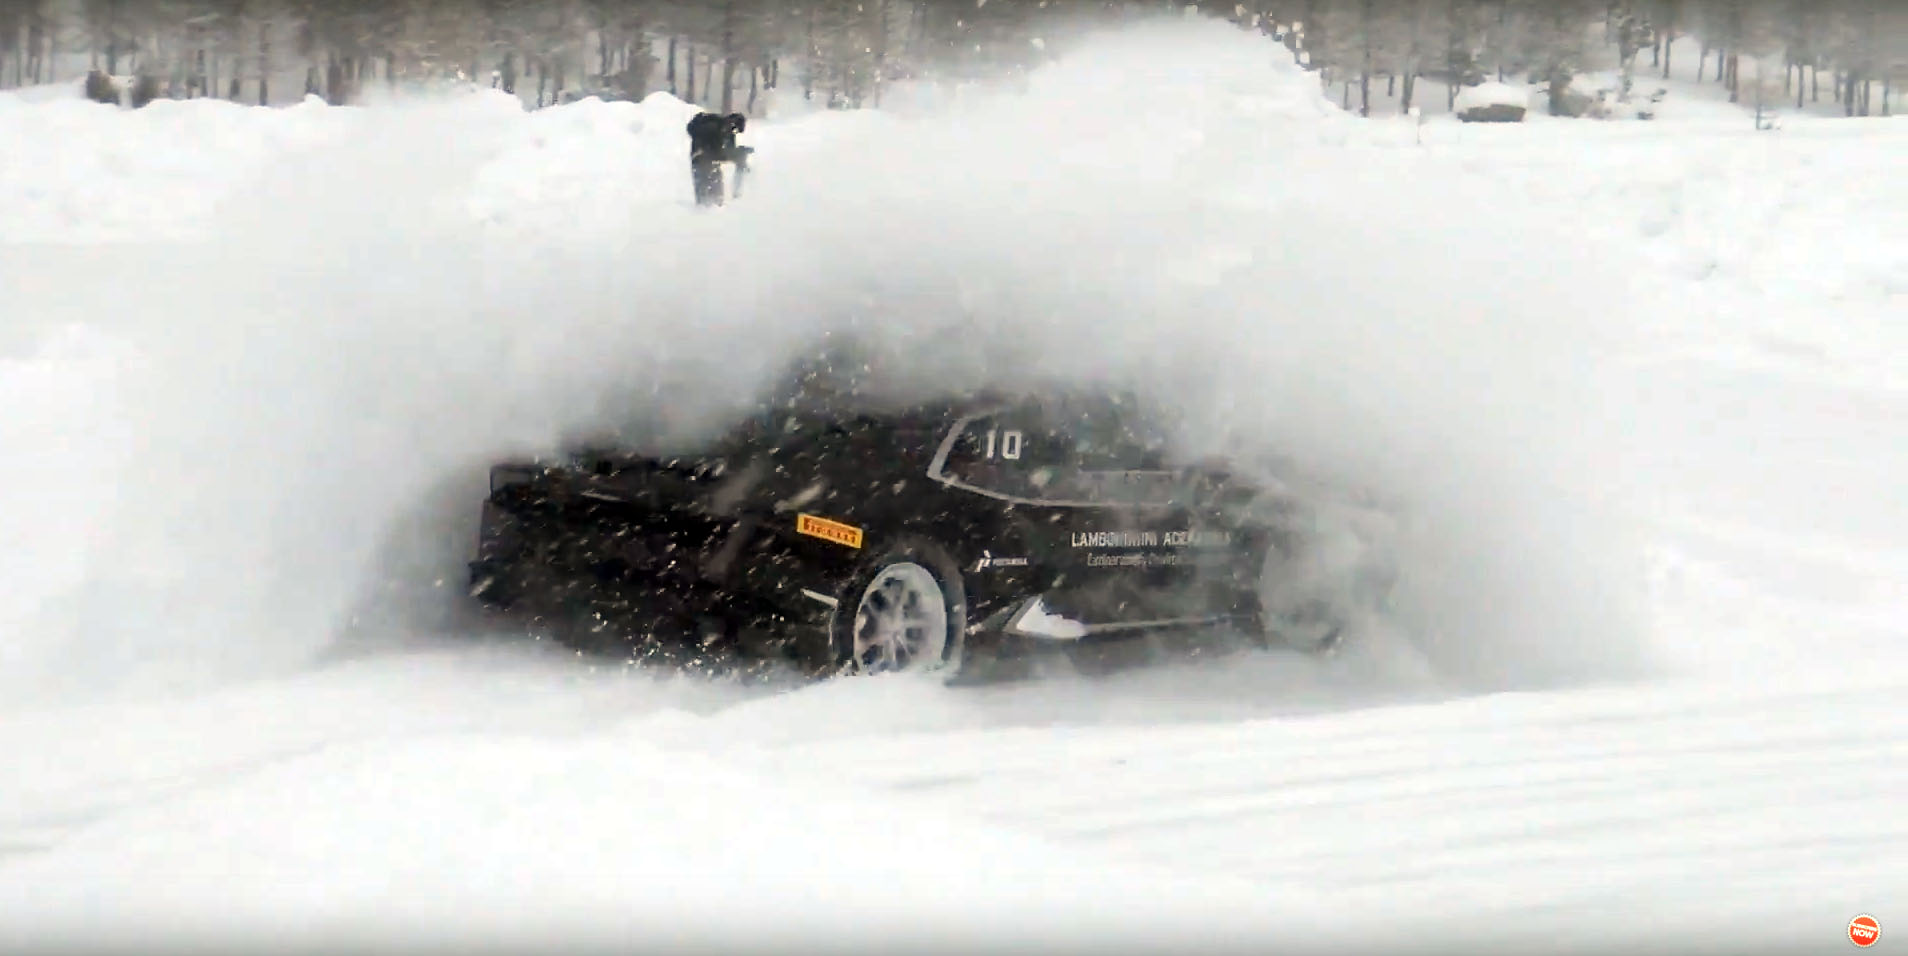 Watch Lamborghini S Smashing Into Snow Banks And Getting Stuck